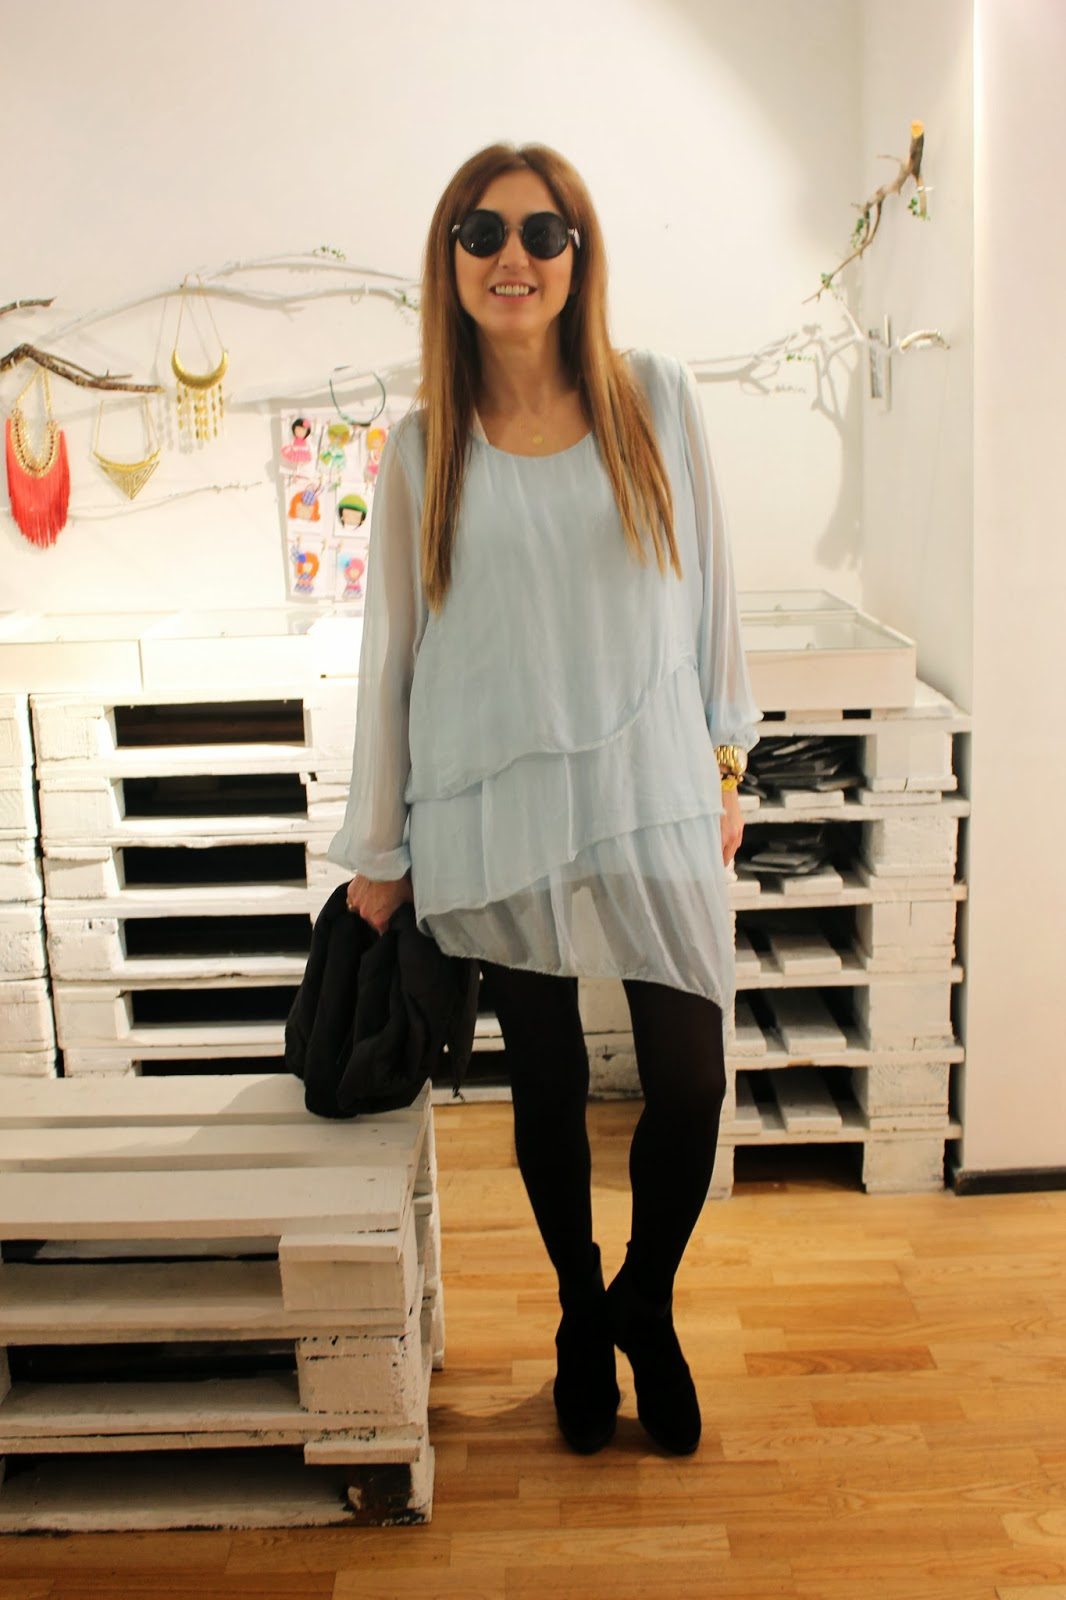 Enfant Terrible, Shopping, Personal Shopper, Moda, street style, The Dress Room